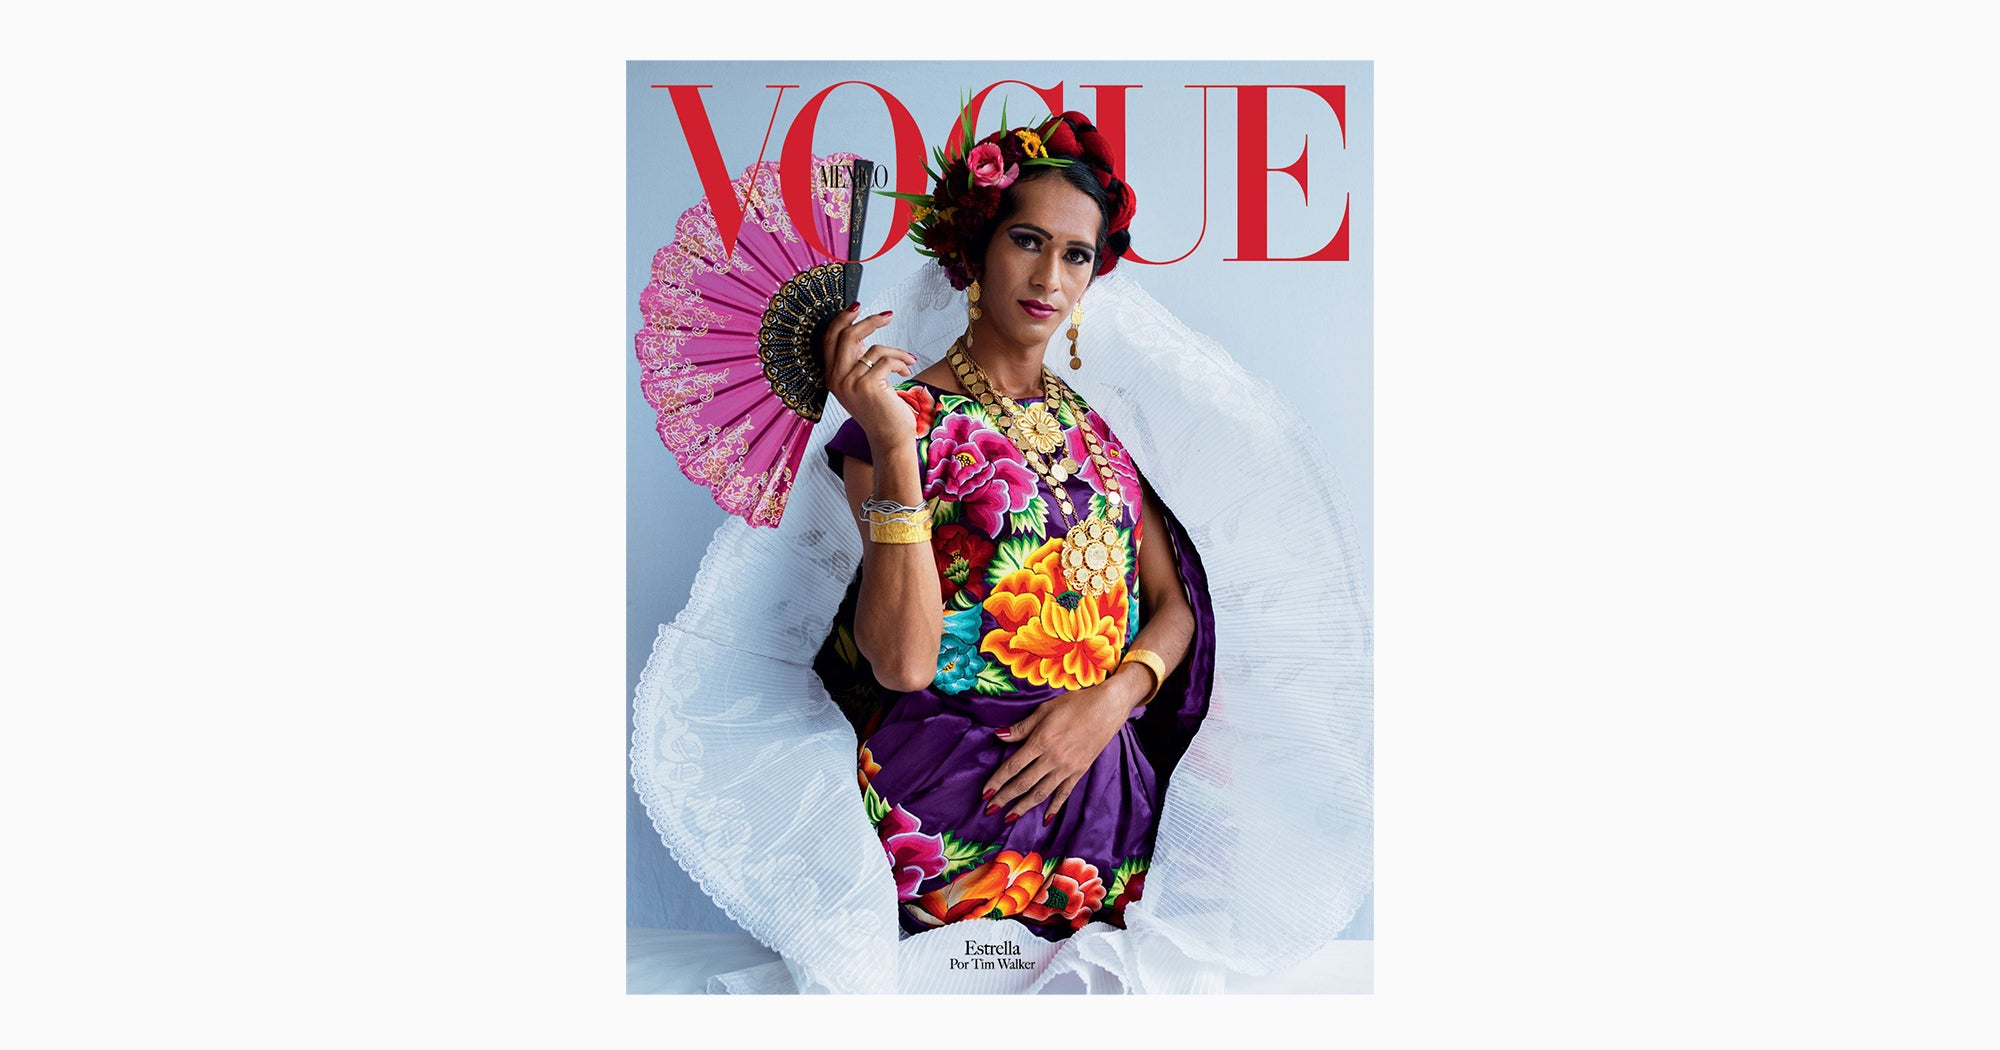 Vogue's New Cover Features Mexico's Third Gender